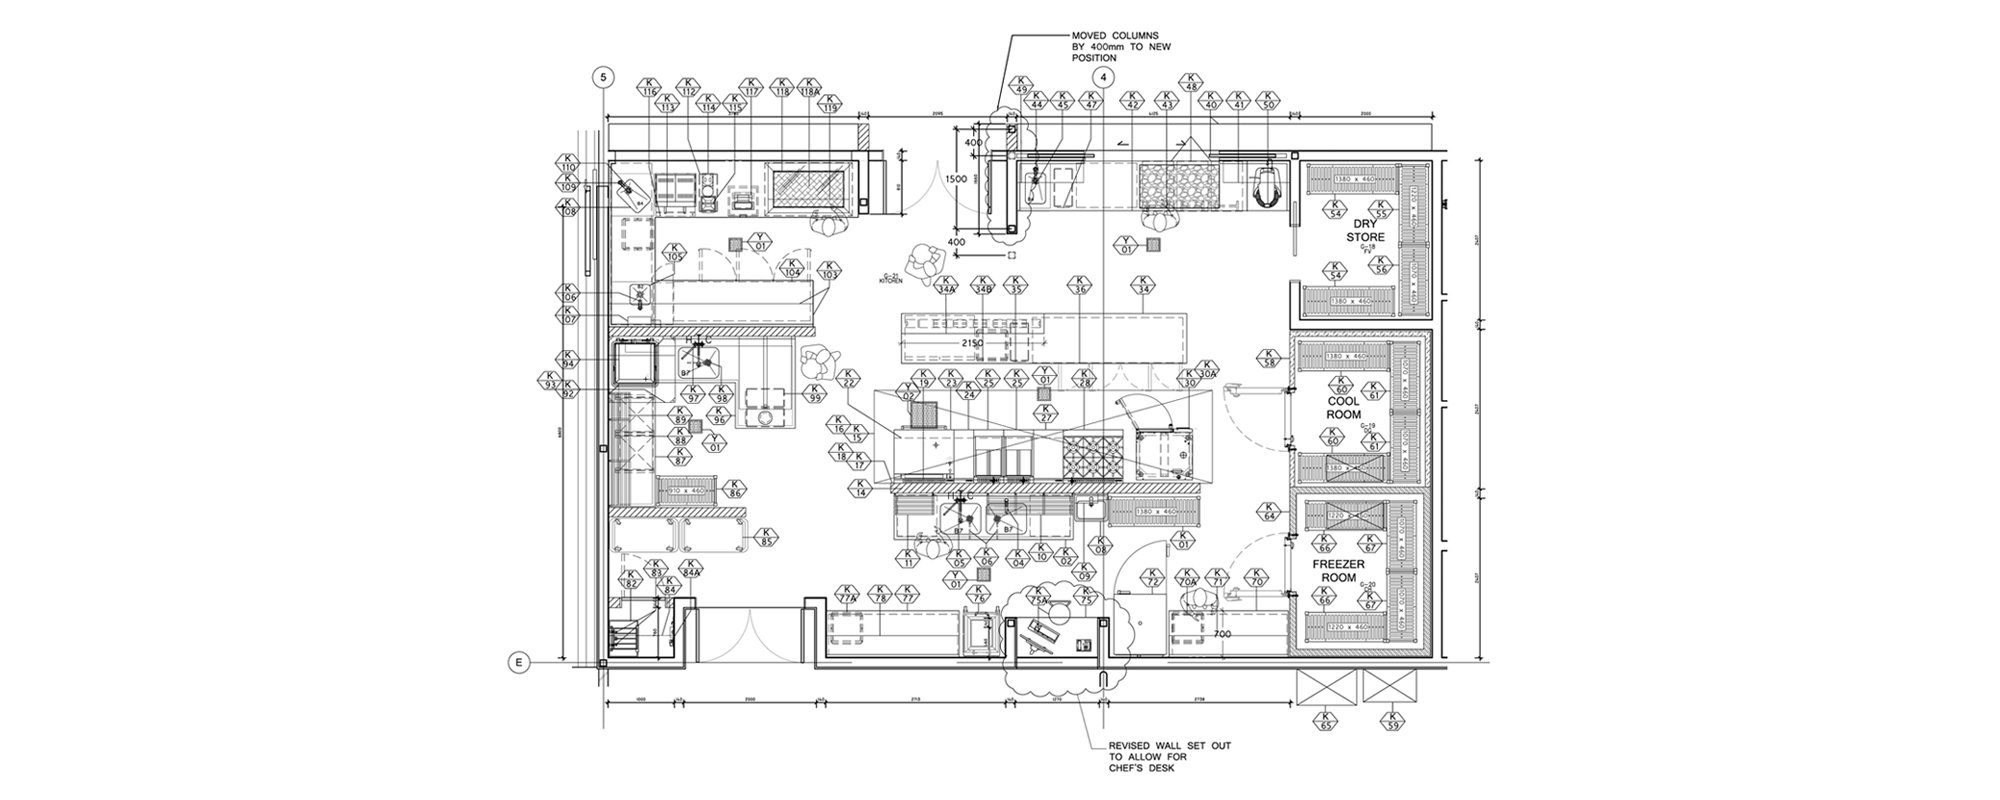 slider_z1kh4b2eR8mp0TvDiXfW-2000x800 Cool Room Wiring Diagrams on room door, room ventilation diagram, room thermostat, room framing diagram, room data sheet, room radiator diagram, room dimensions, room air conditioning, inverter generator diagram, room lights, solar disconnect wire diagram, generator connection diagram, room lighting diagram, room accessories, room design diagram, basic electric circuit diagram,